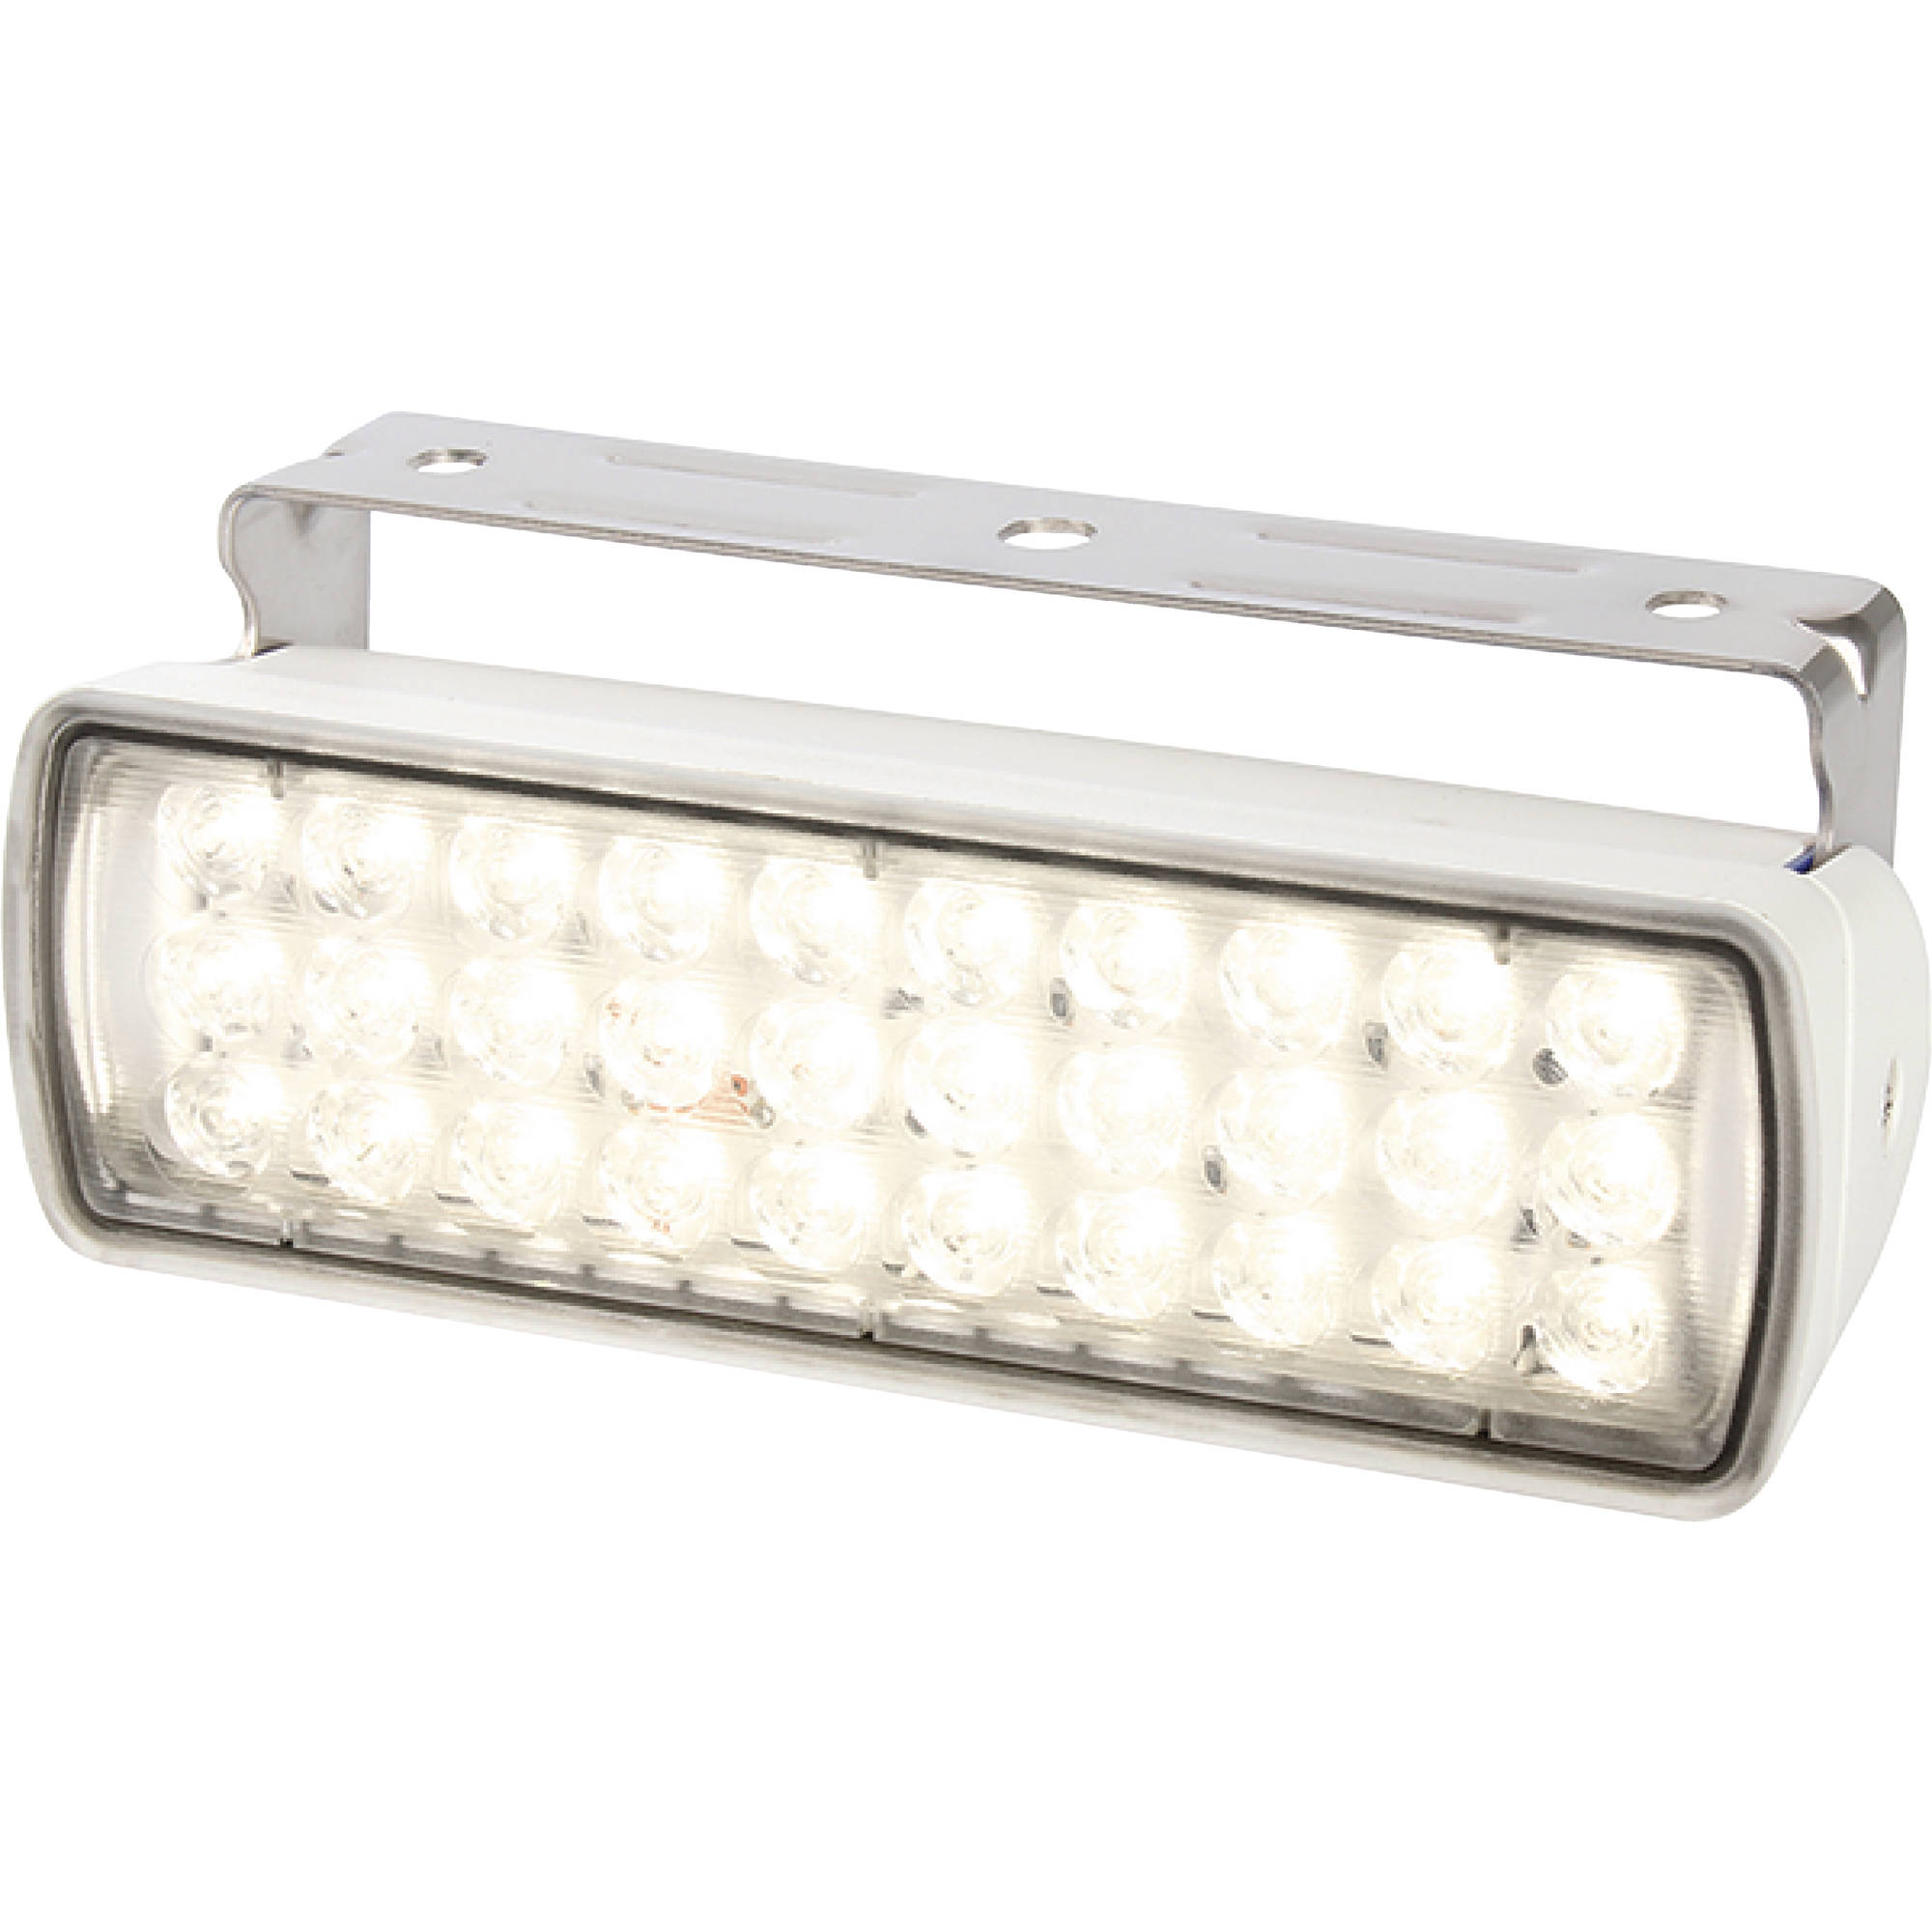 Hella Sea Hawk-XL 9-33V DC Bracket Mount White Light LED Floodlight, White Housing, Spread